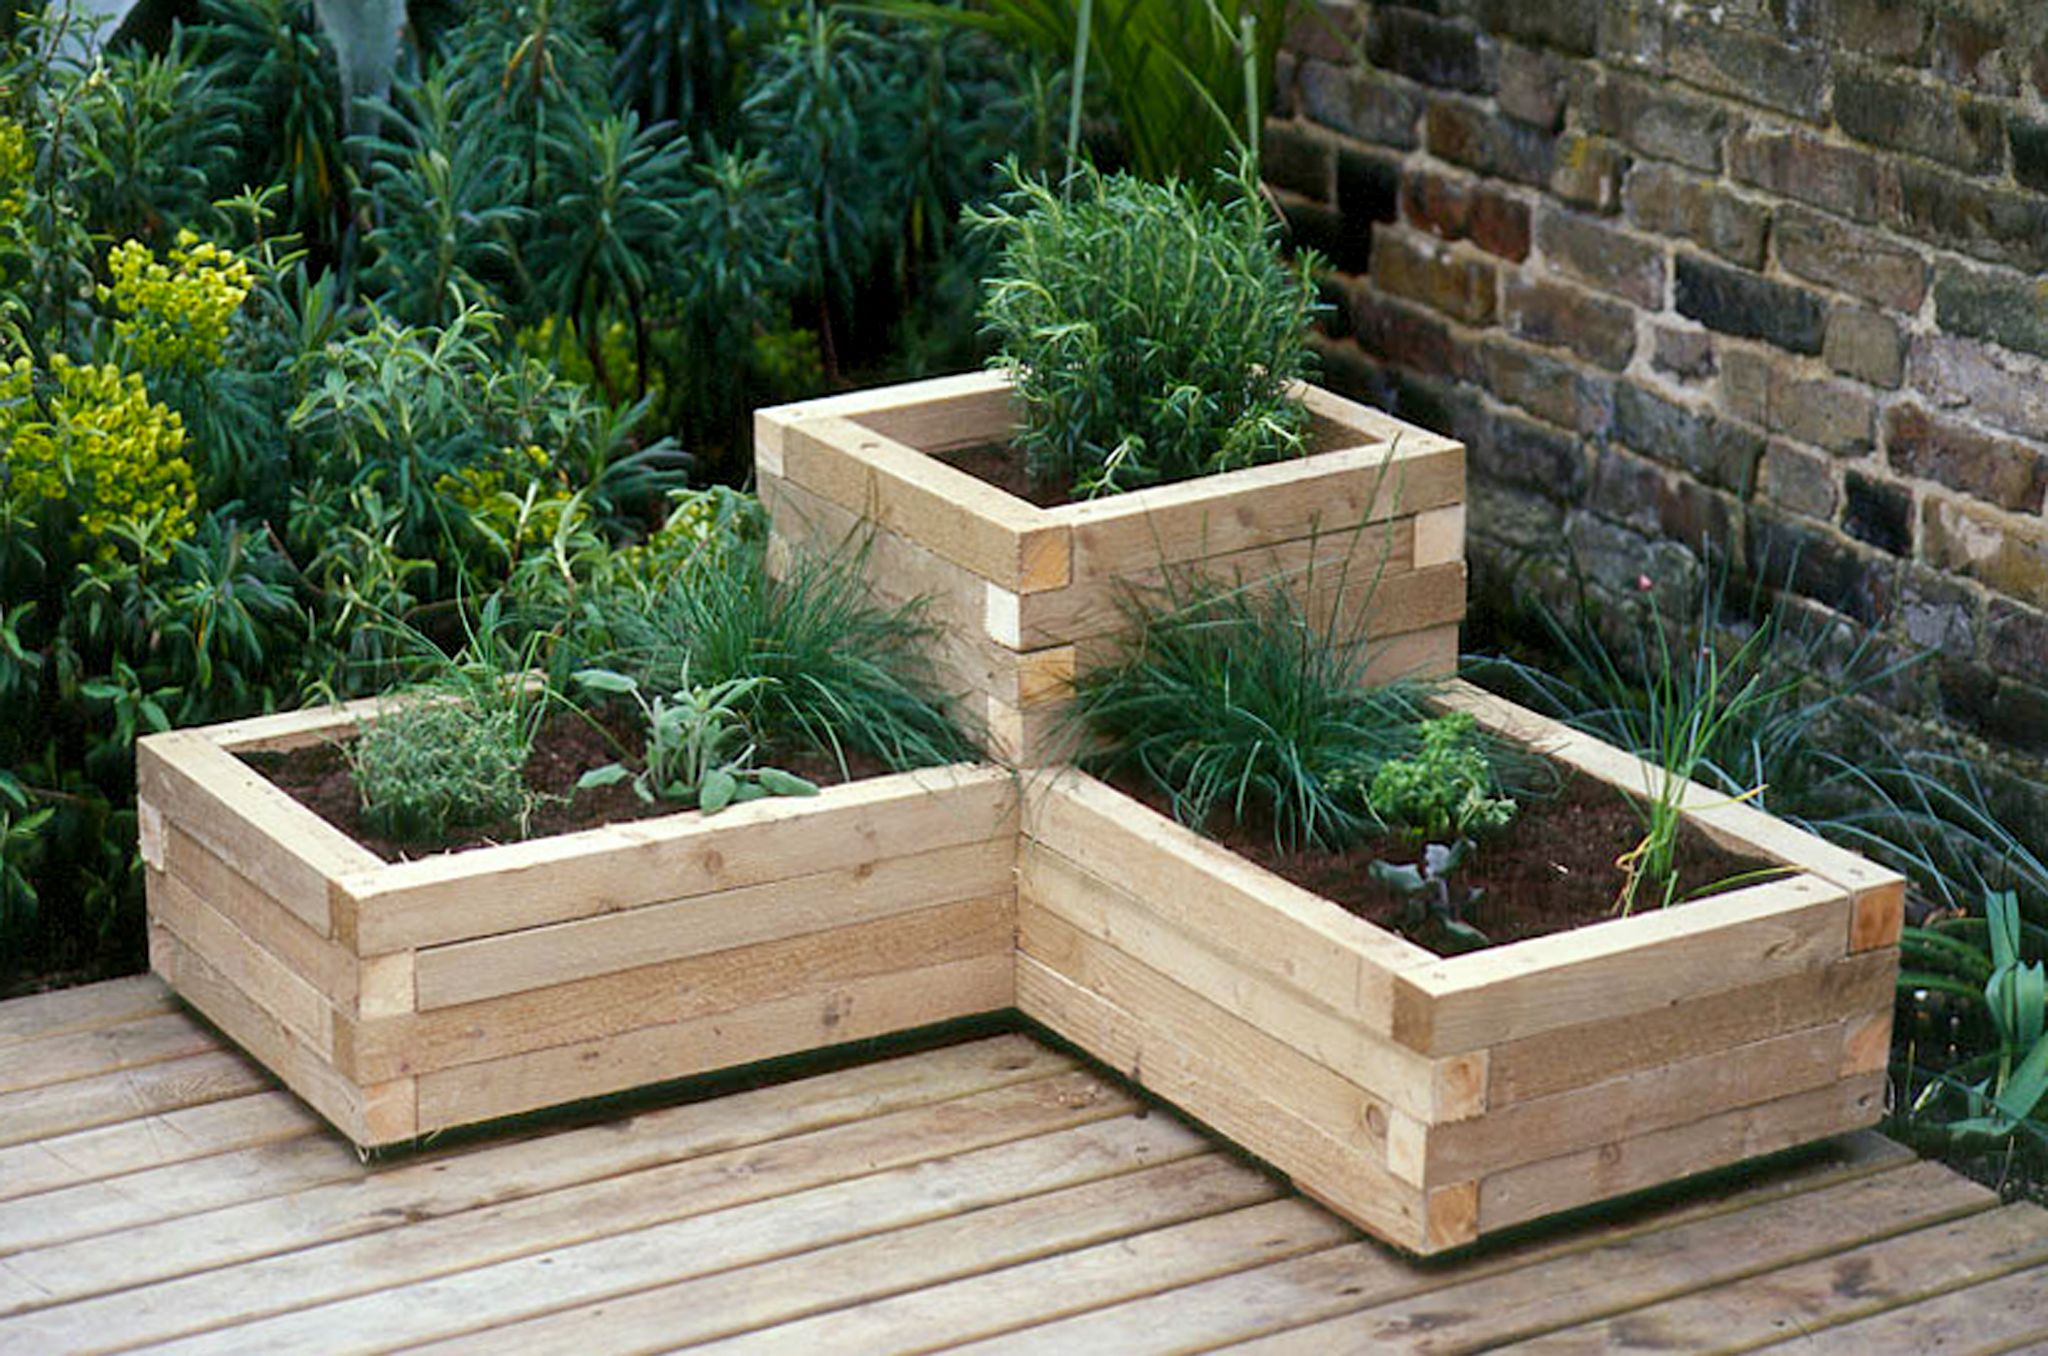 Wooden Planters Are Attractive And Easy To Make Build Your Own From Pressure Treated Timber Using Our Practical Guide Bbc Gardeners World Magazine